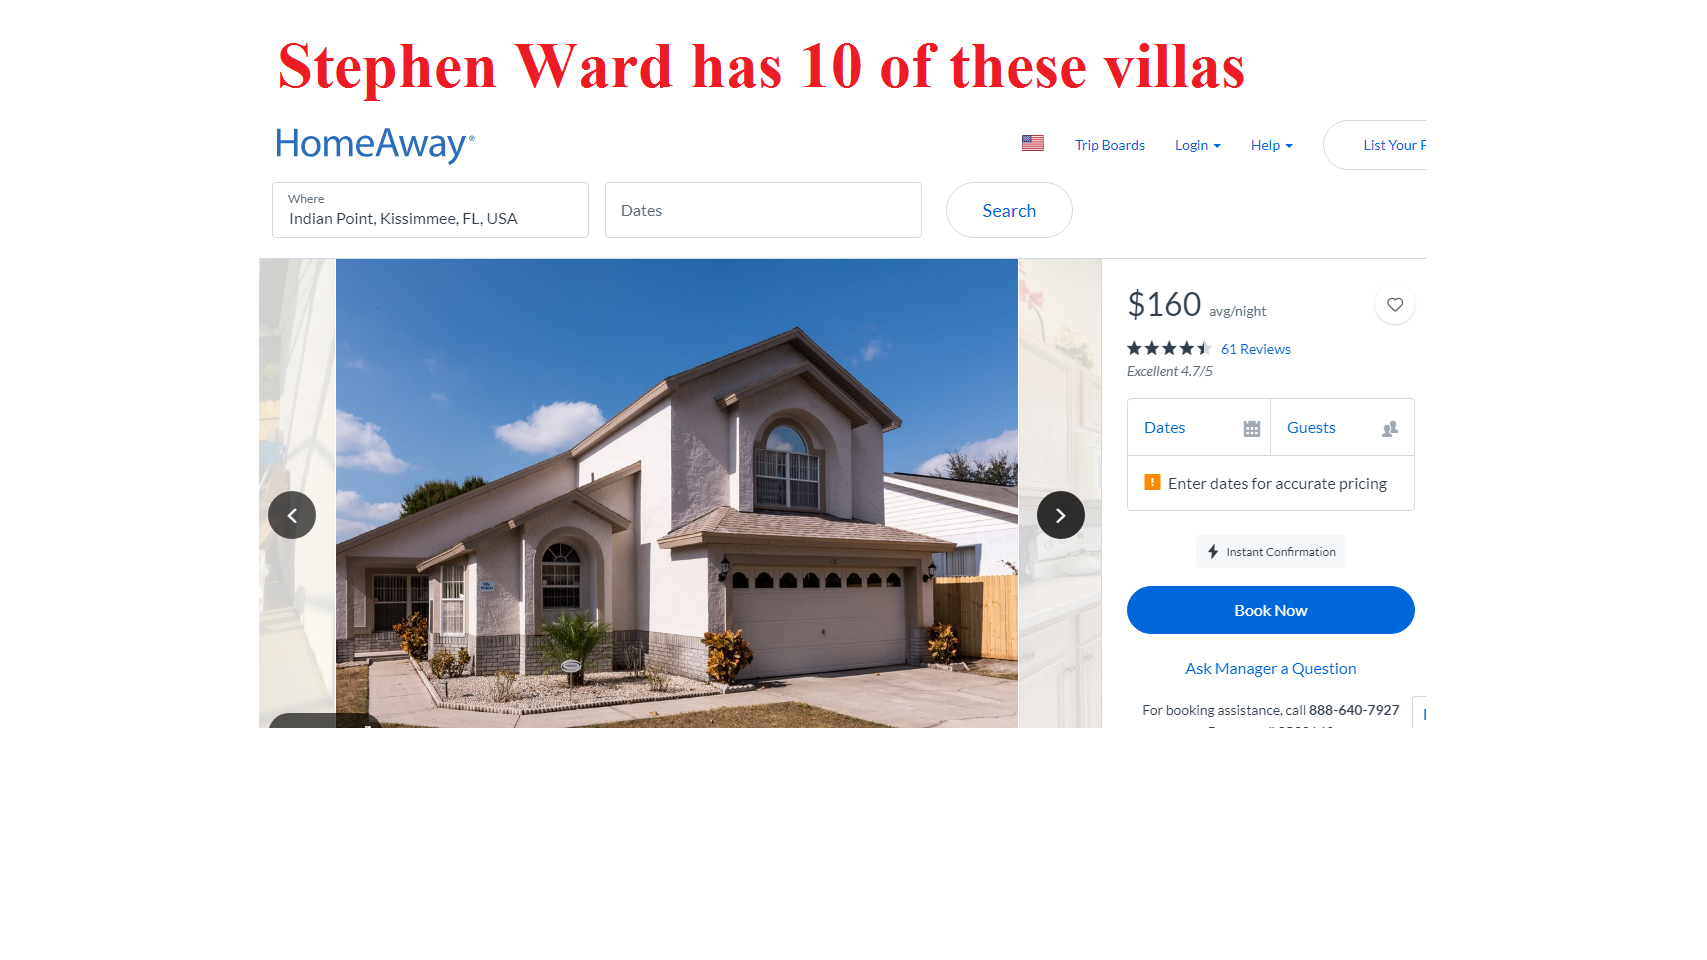 Pension Life Blog - Mastermind - Stephen Ward has 10 luxury villas and his company is based in Moraira on the Costa Blanca